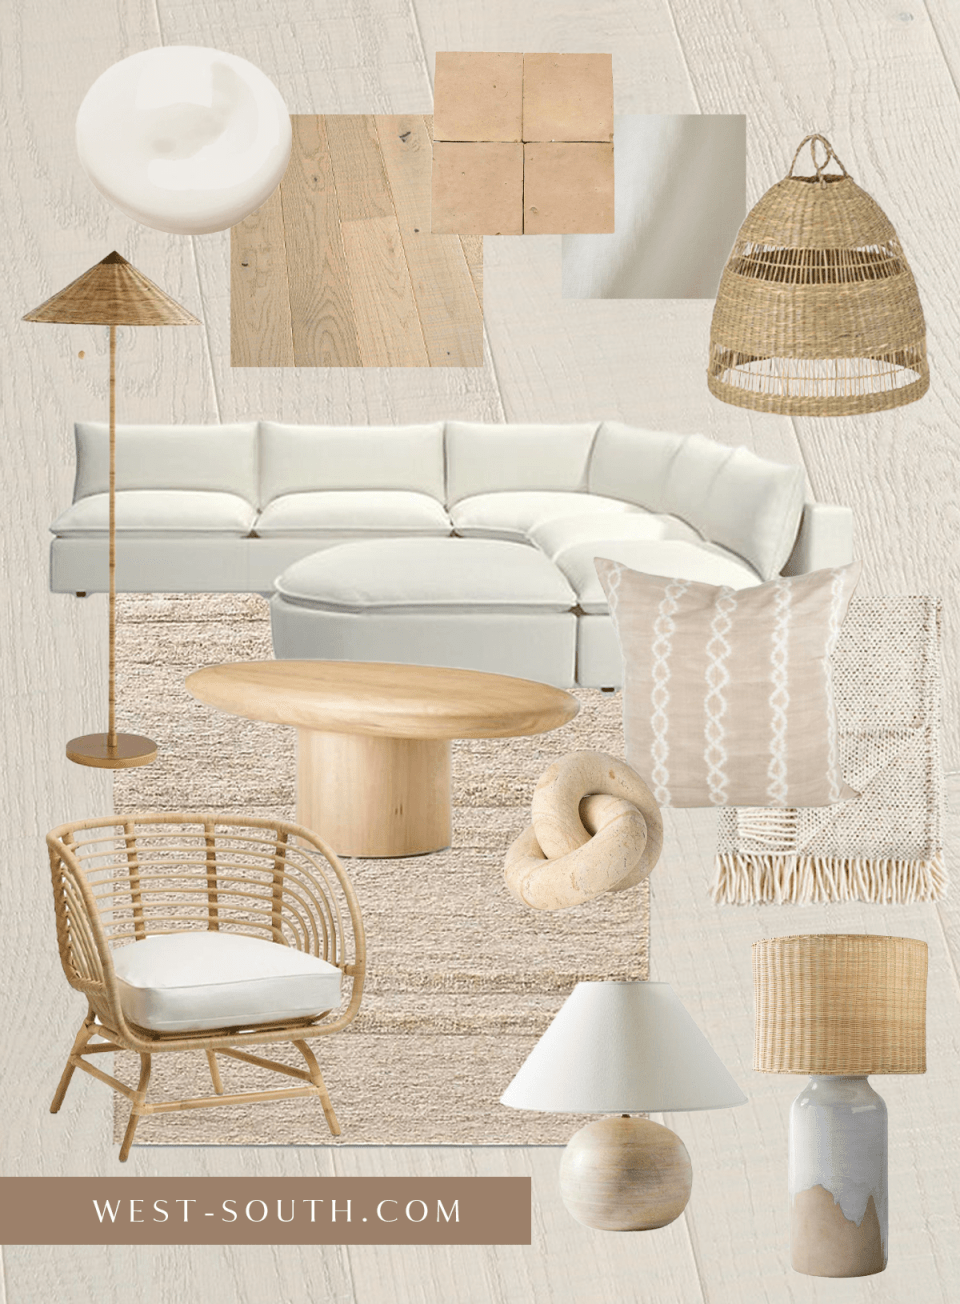 moodboard of modern beach house with woven details and sand colors